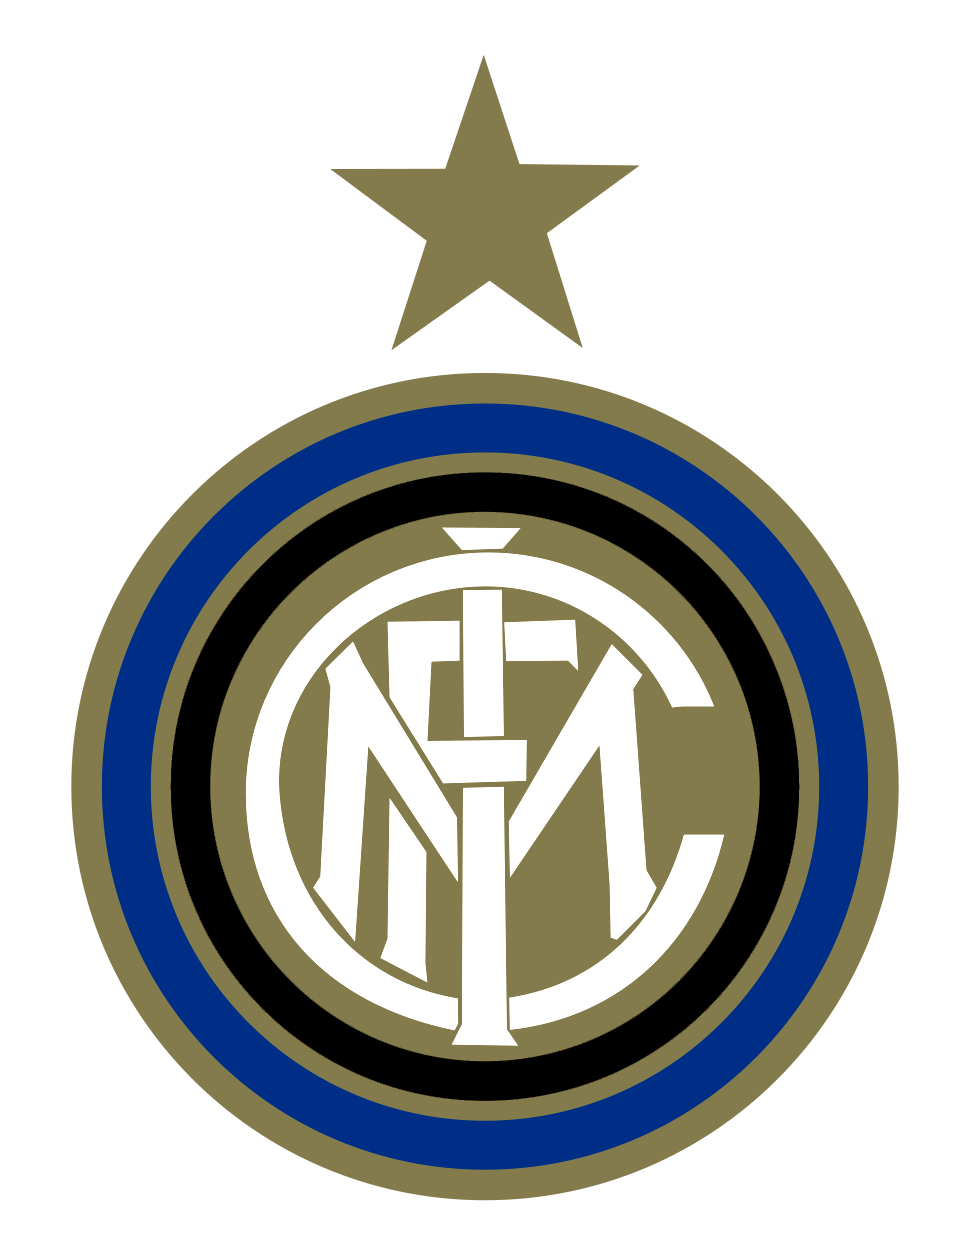 Logo for Inter designing